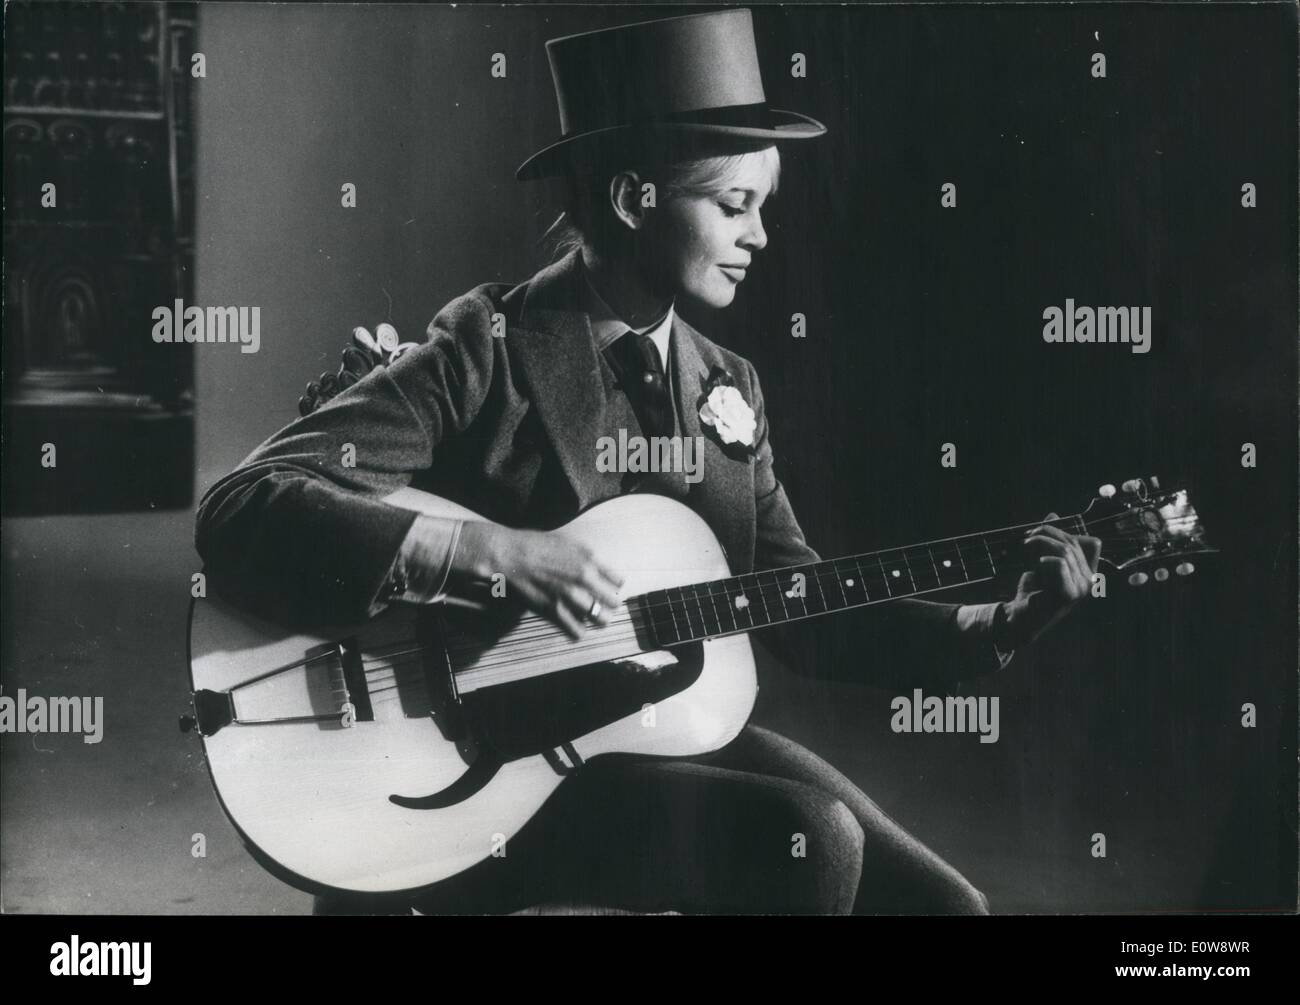 Dec  12, 1961 - Brigitte will sing songs while playing the